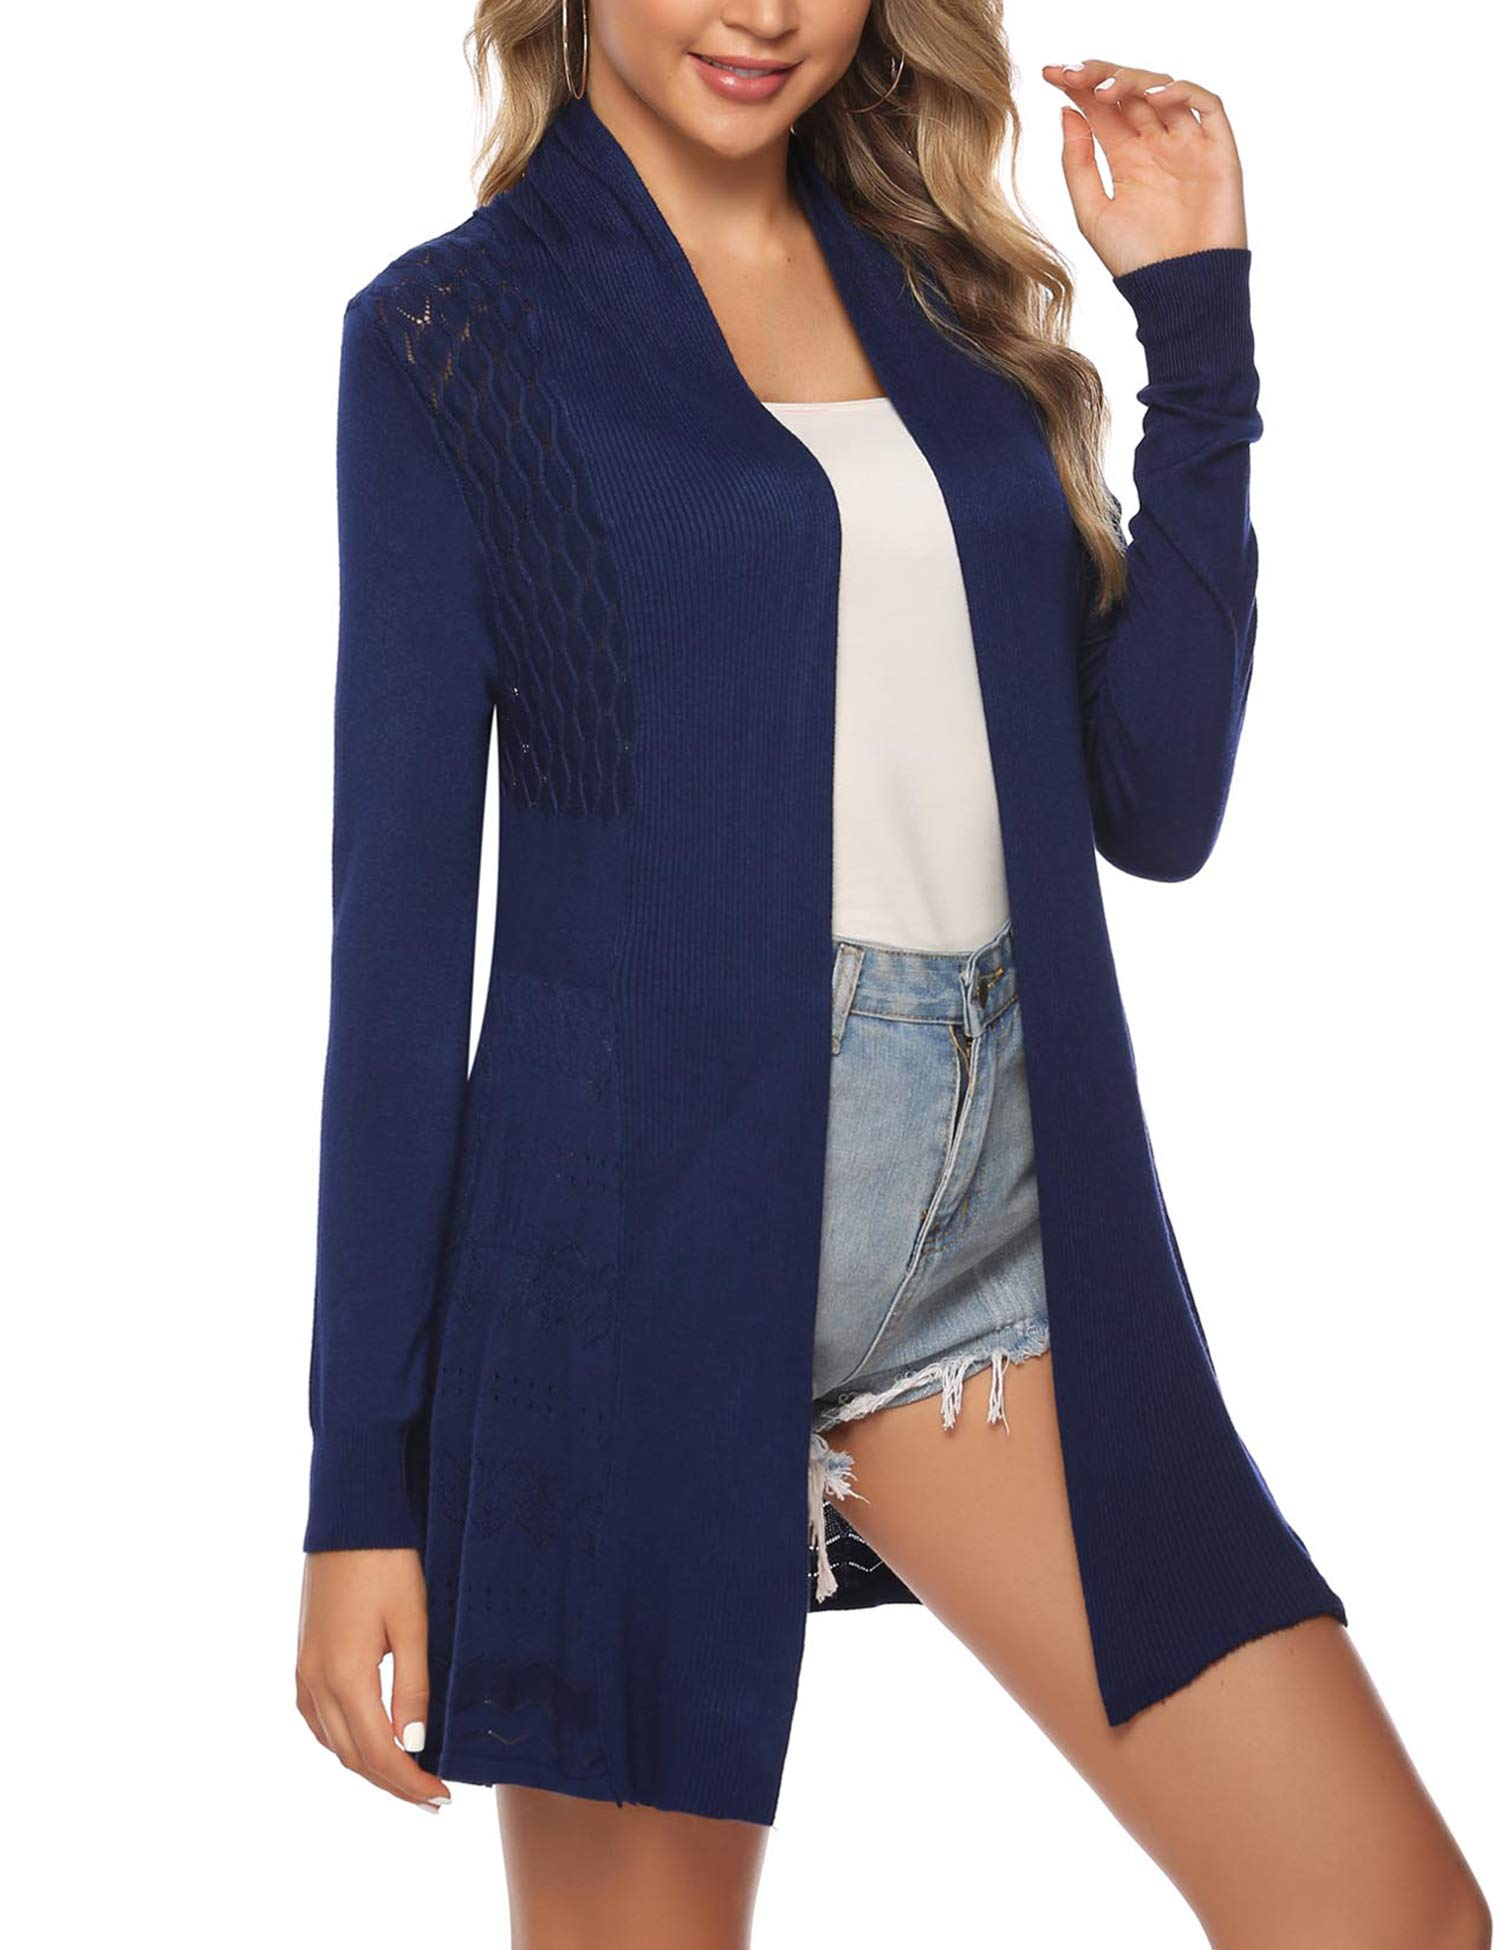 Sykooria Women's Long Cardigan Sweater Open Front Lightweight Knitted Crochet Sweaters S-XXL